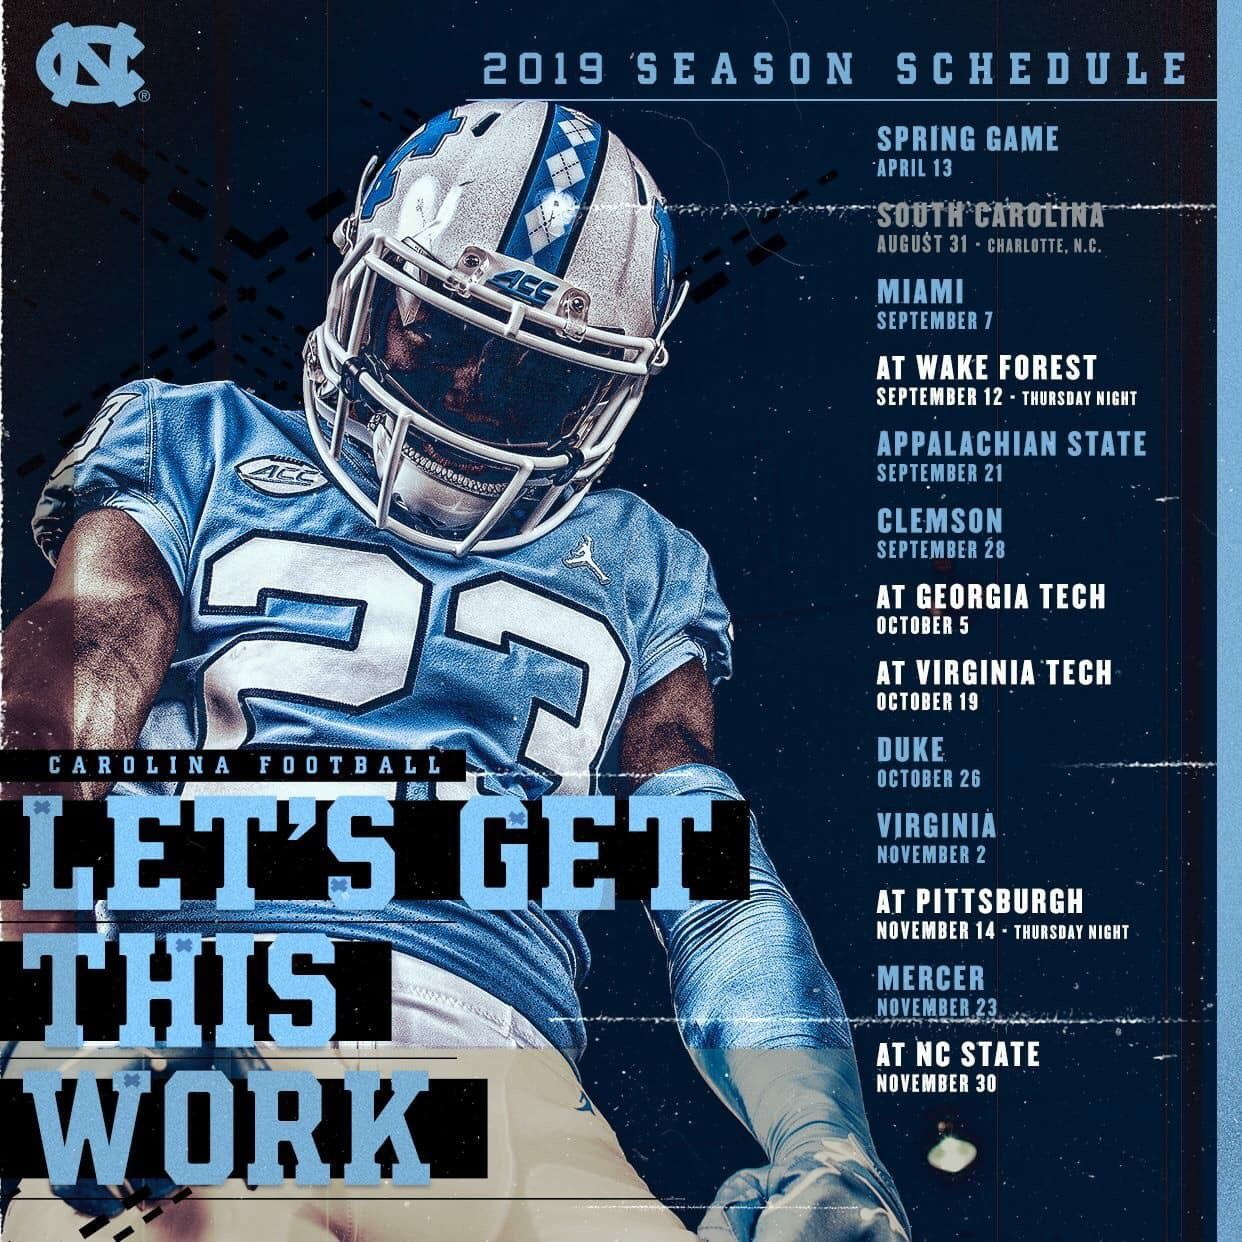 Pin by Keith Pickels on UNC FOOTBALL Carolina football